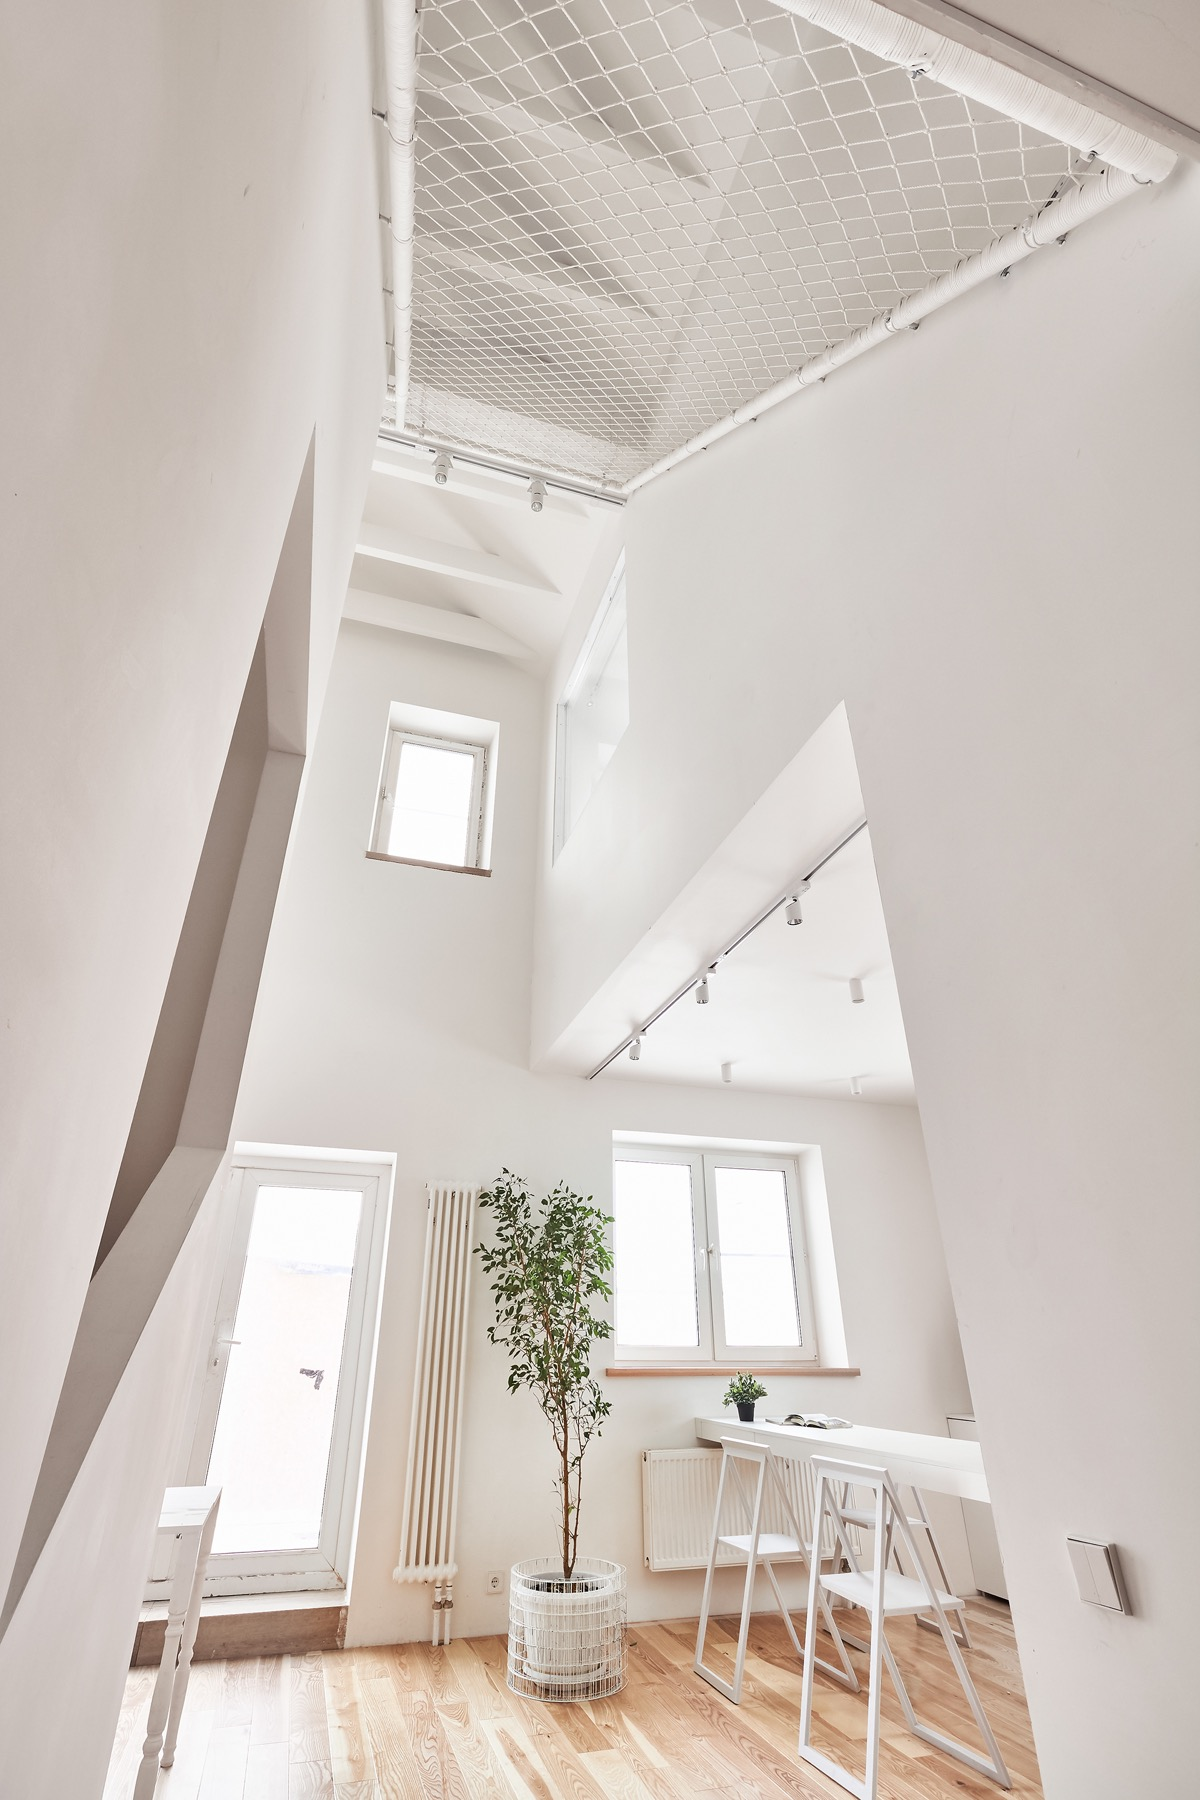 Natural Light Design - A white and wood house for a stylish family